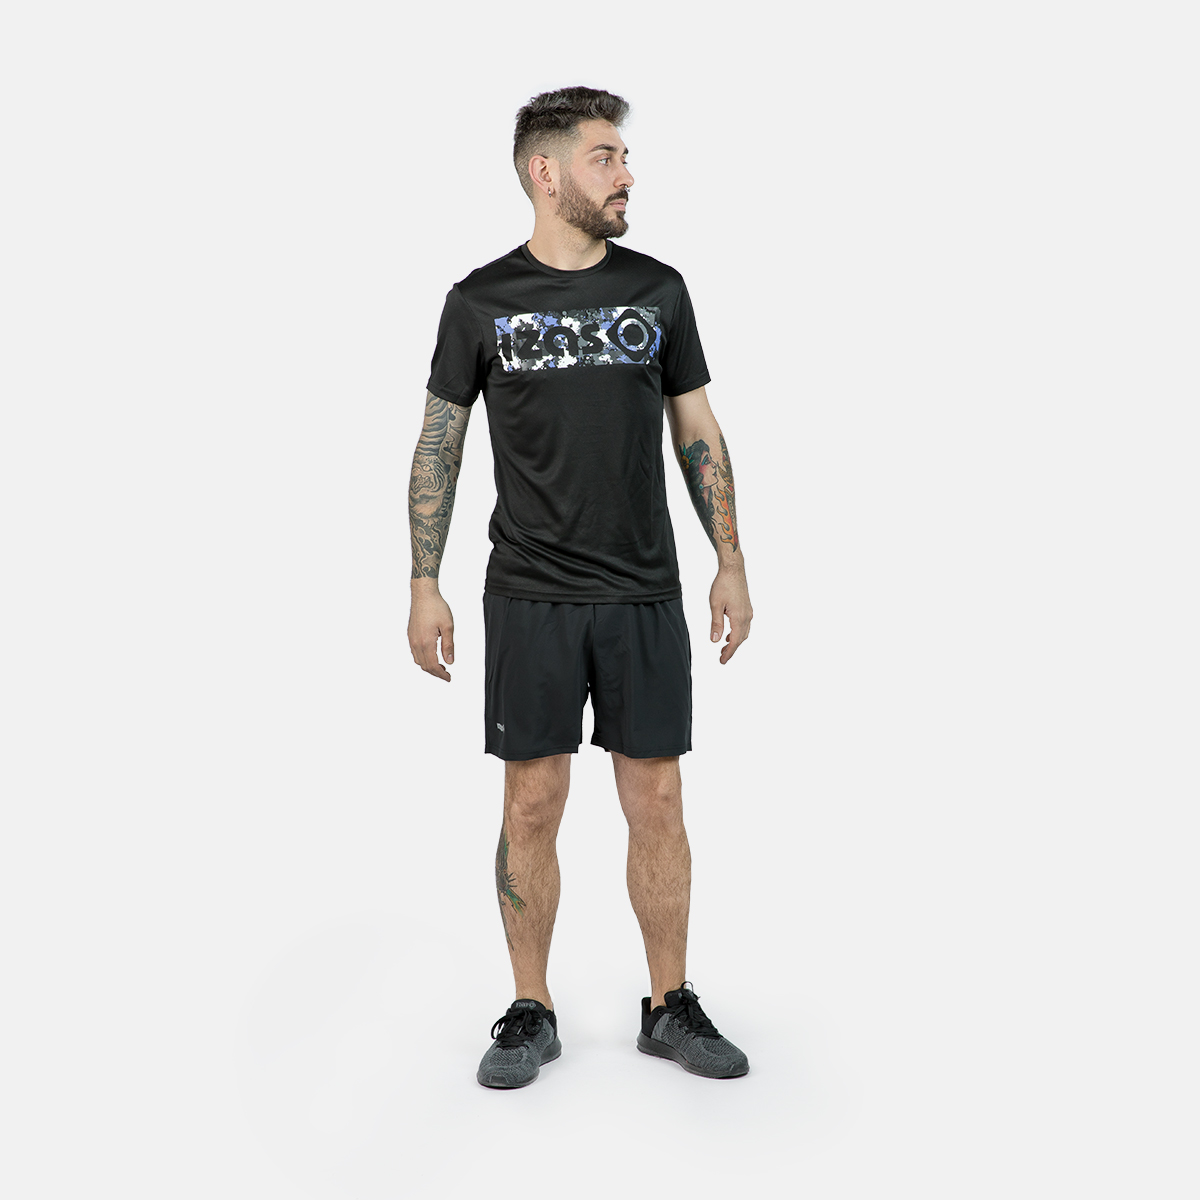 MAN'S AKRON SHORT SLEEVE T SHIRT BLACK